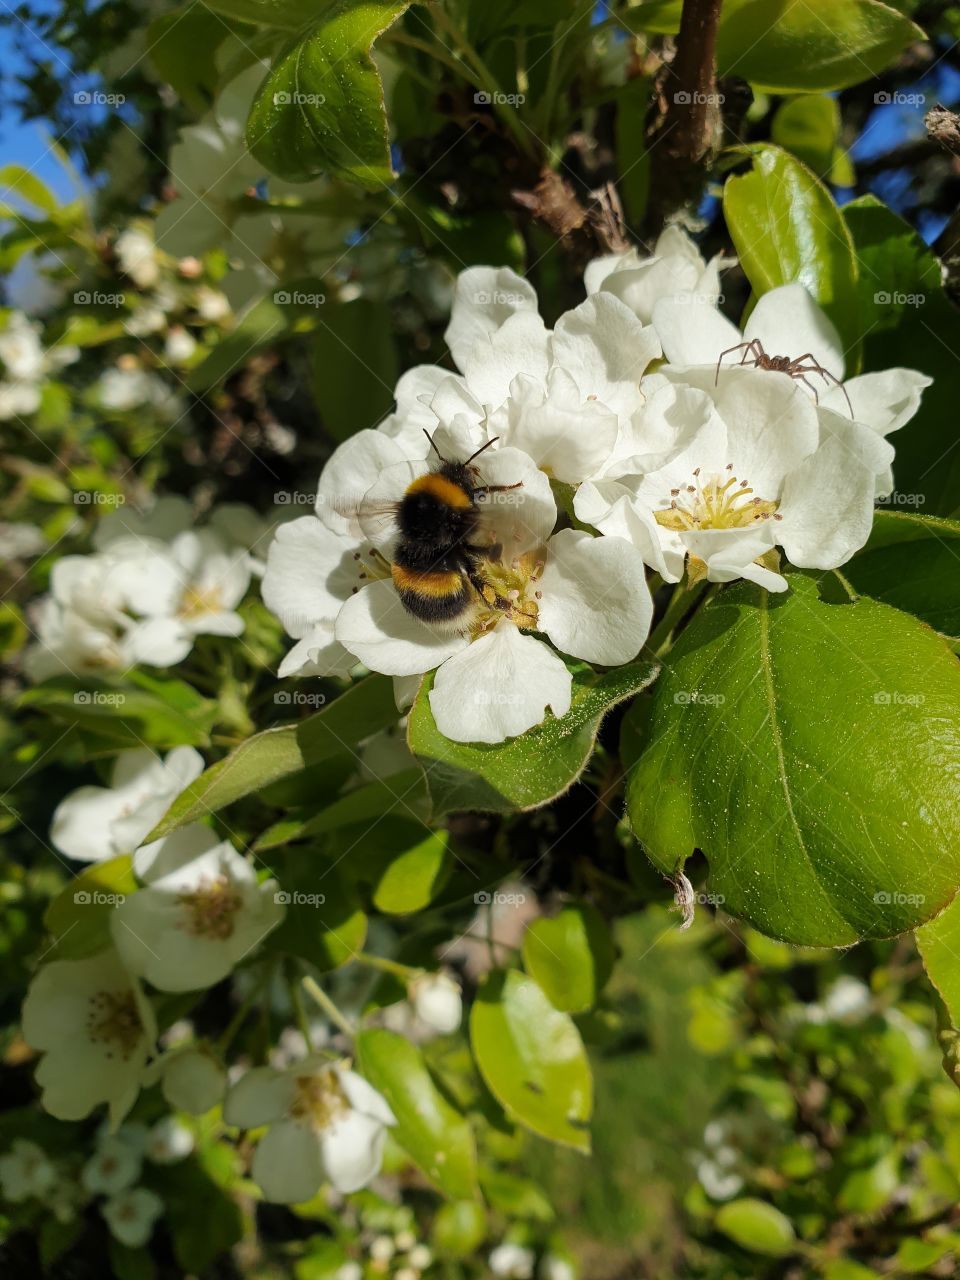 A bumblebee in a tree